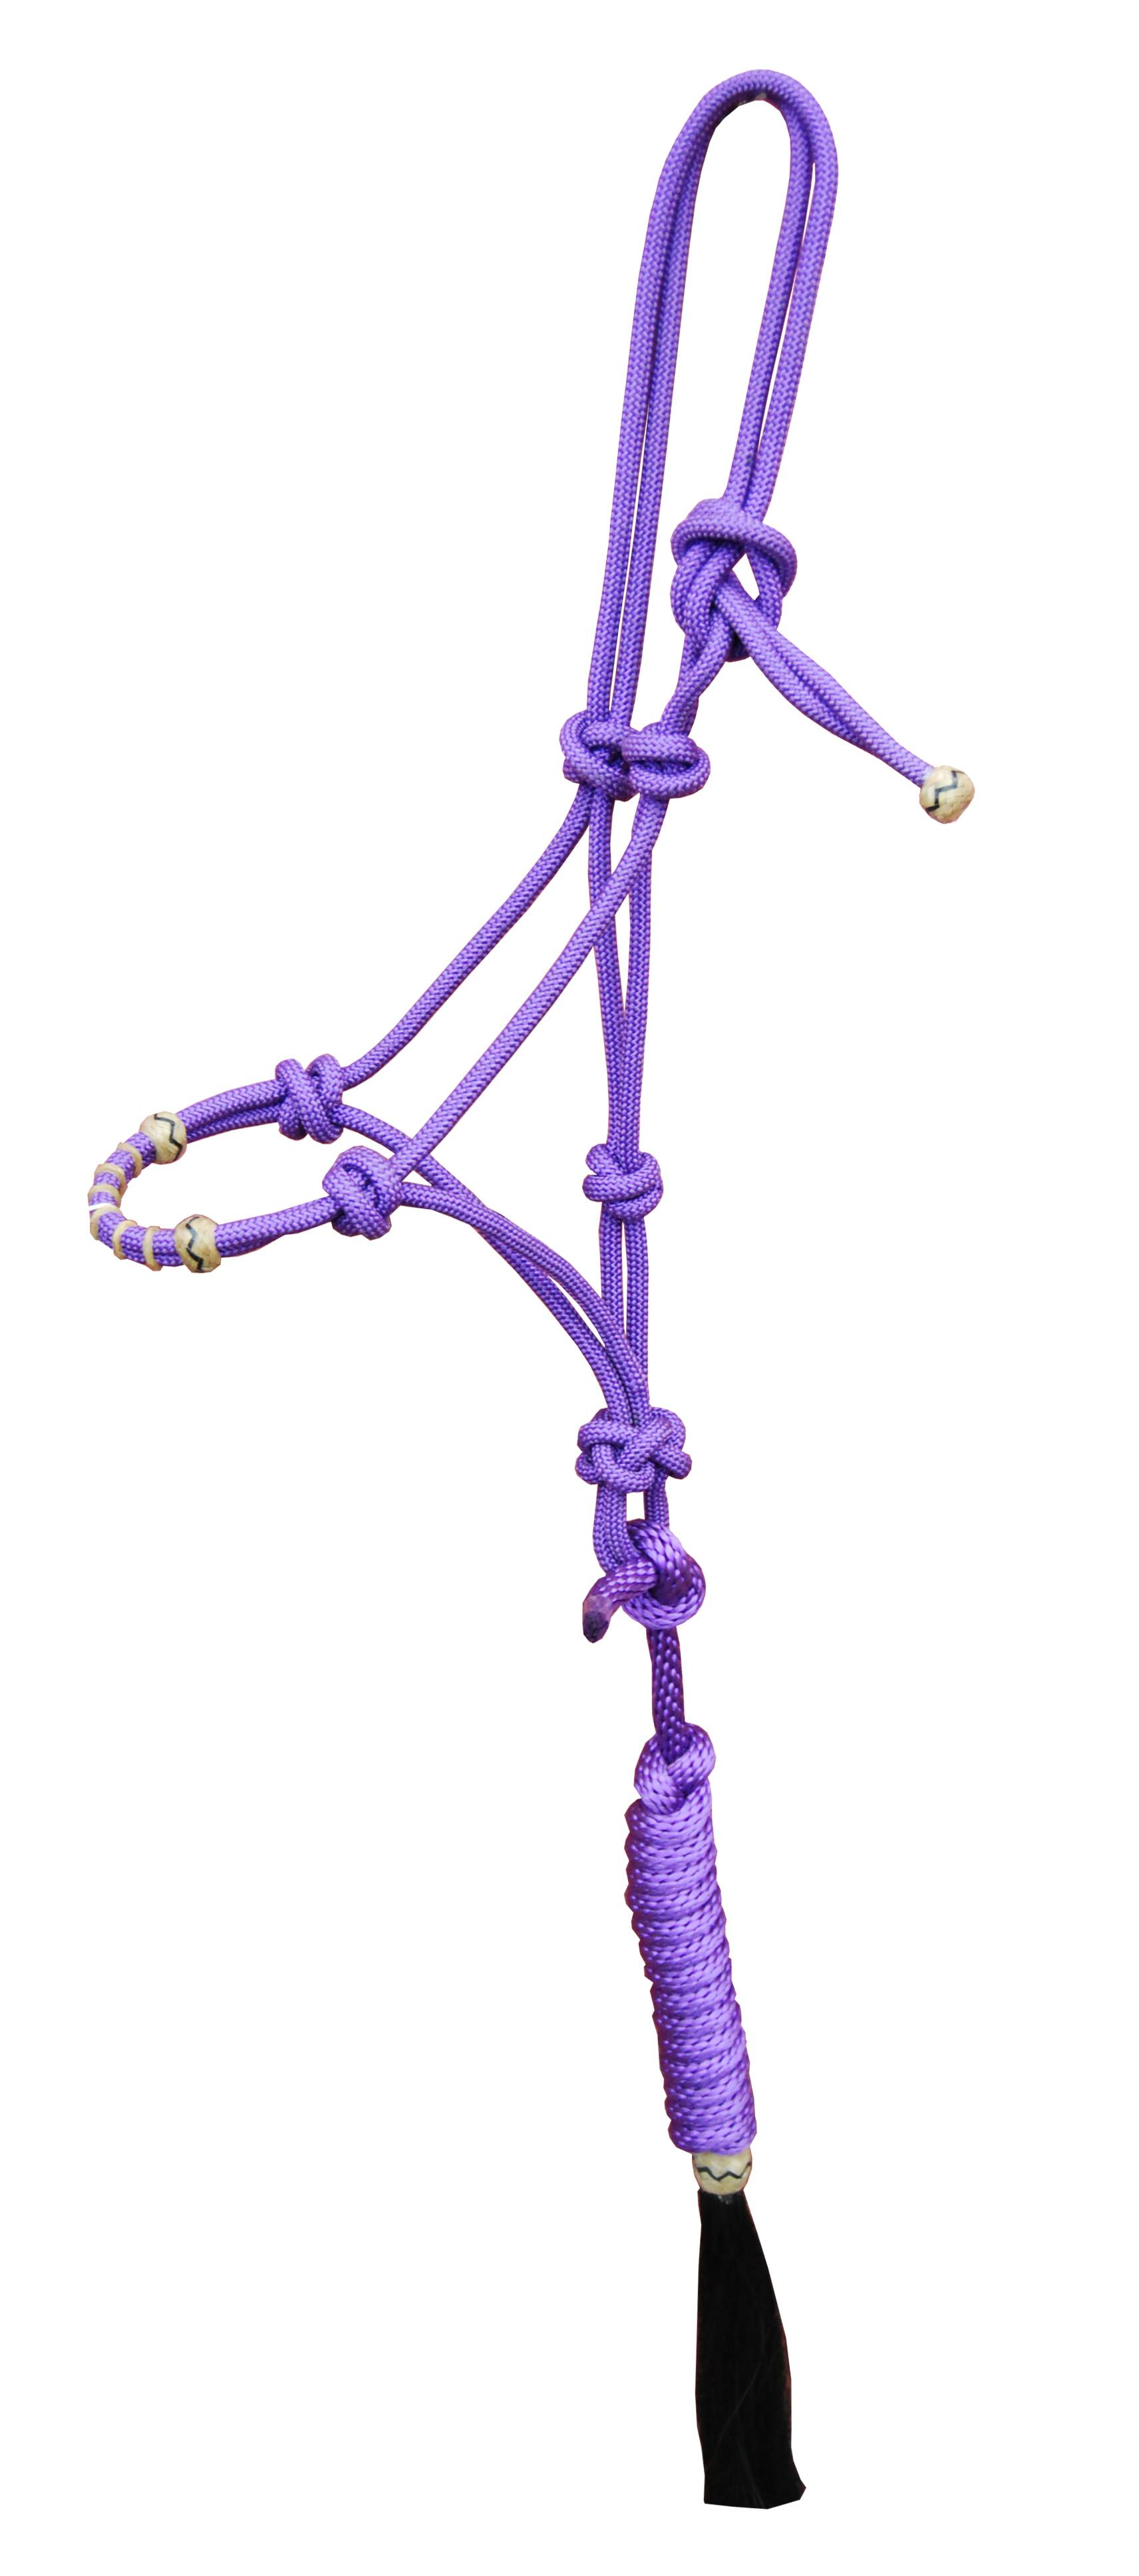 Turn-Two Santa Fe Rope Halter